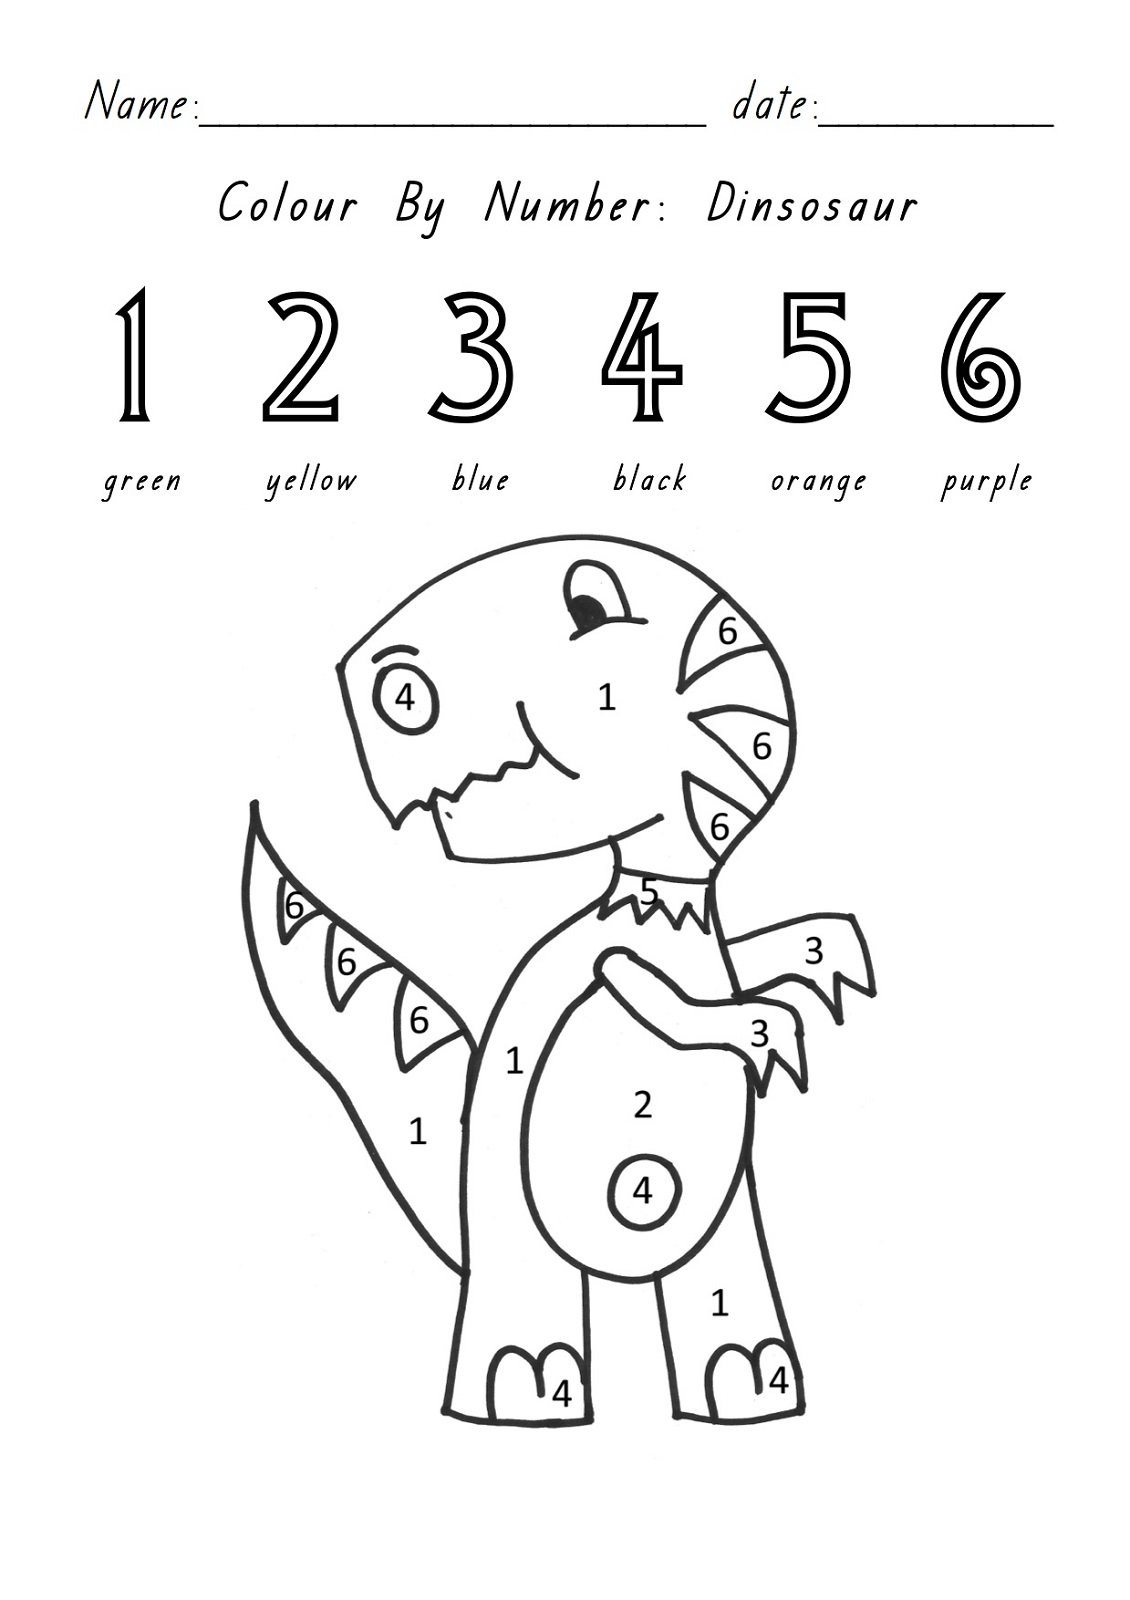 color by number sheets dino